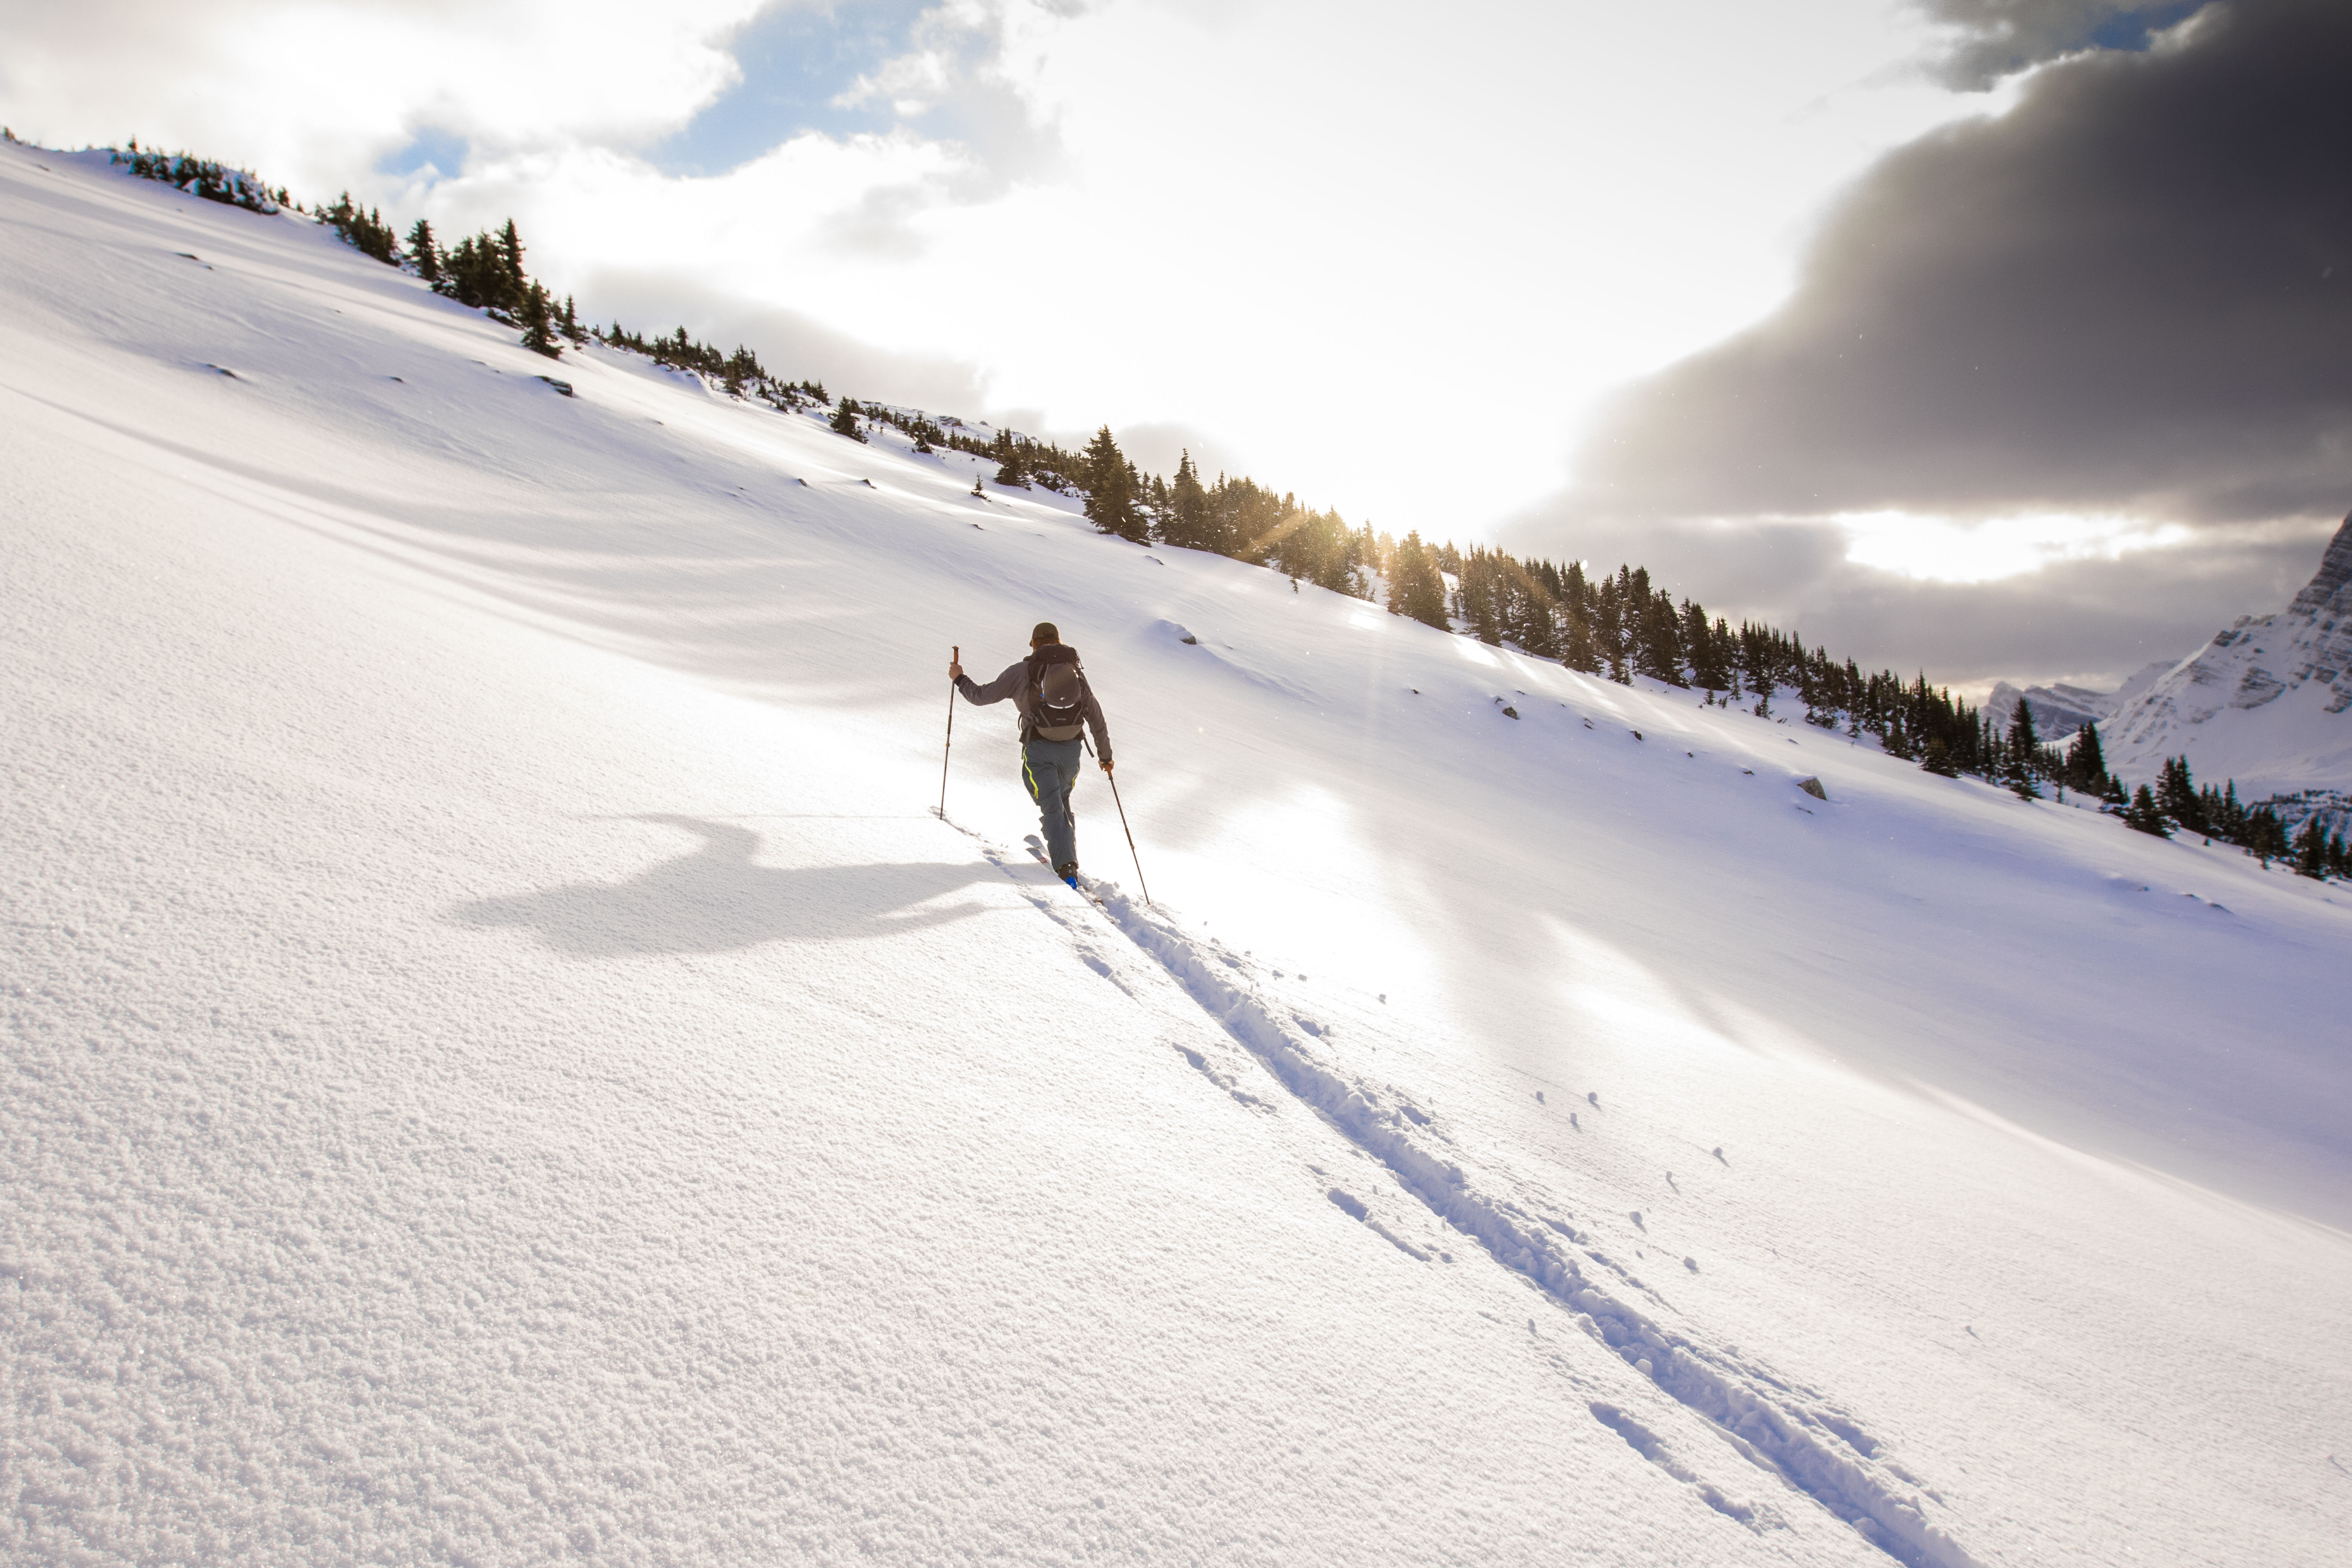 Following Kevin Hjertaas on a personal ski day on the Freedom RS 130's will hurt.